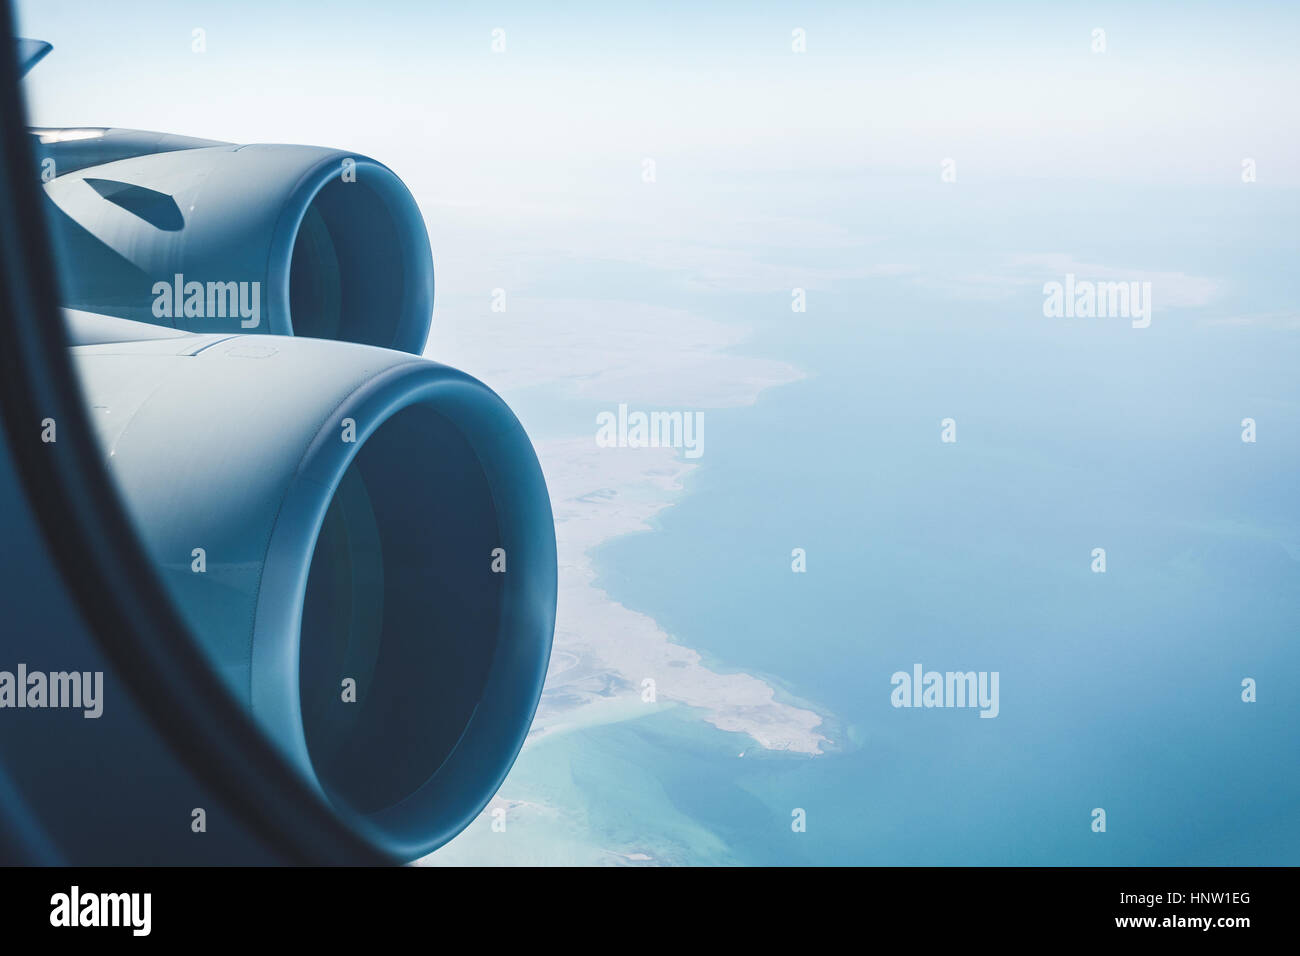 Airliner jet engines and coastal landscape, airplane in flight - Stock Image